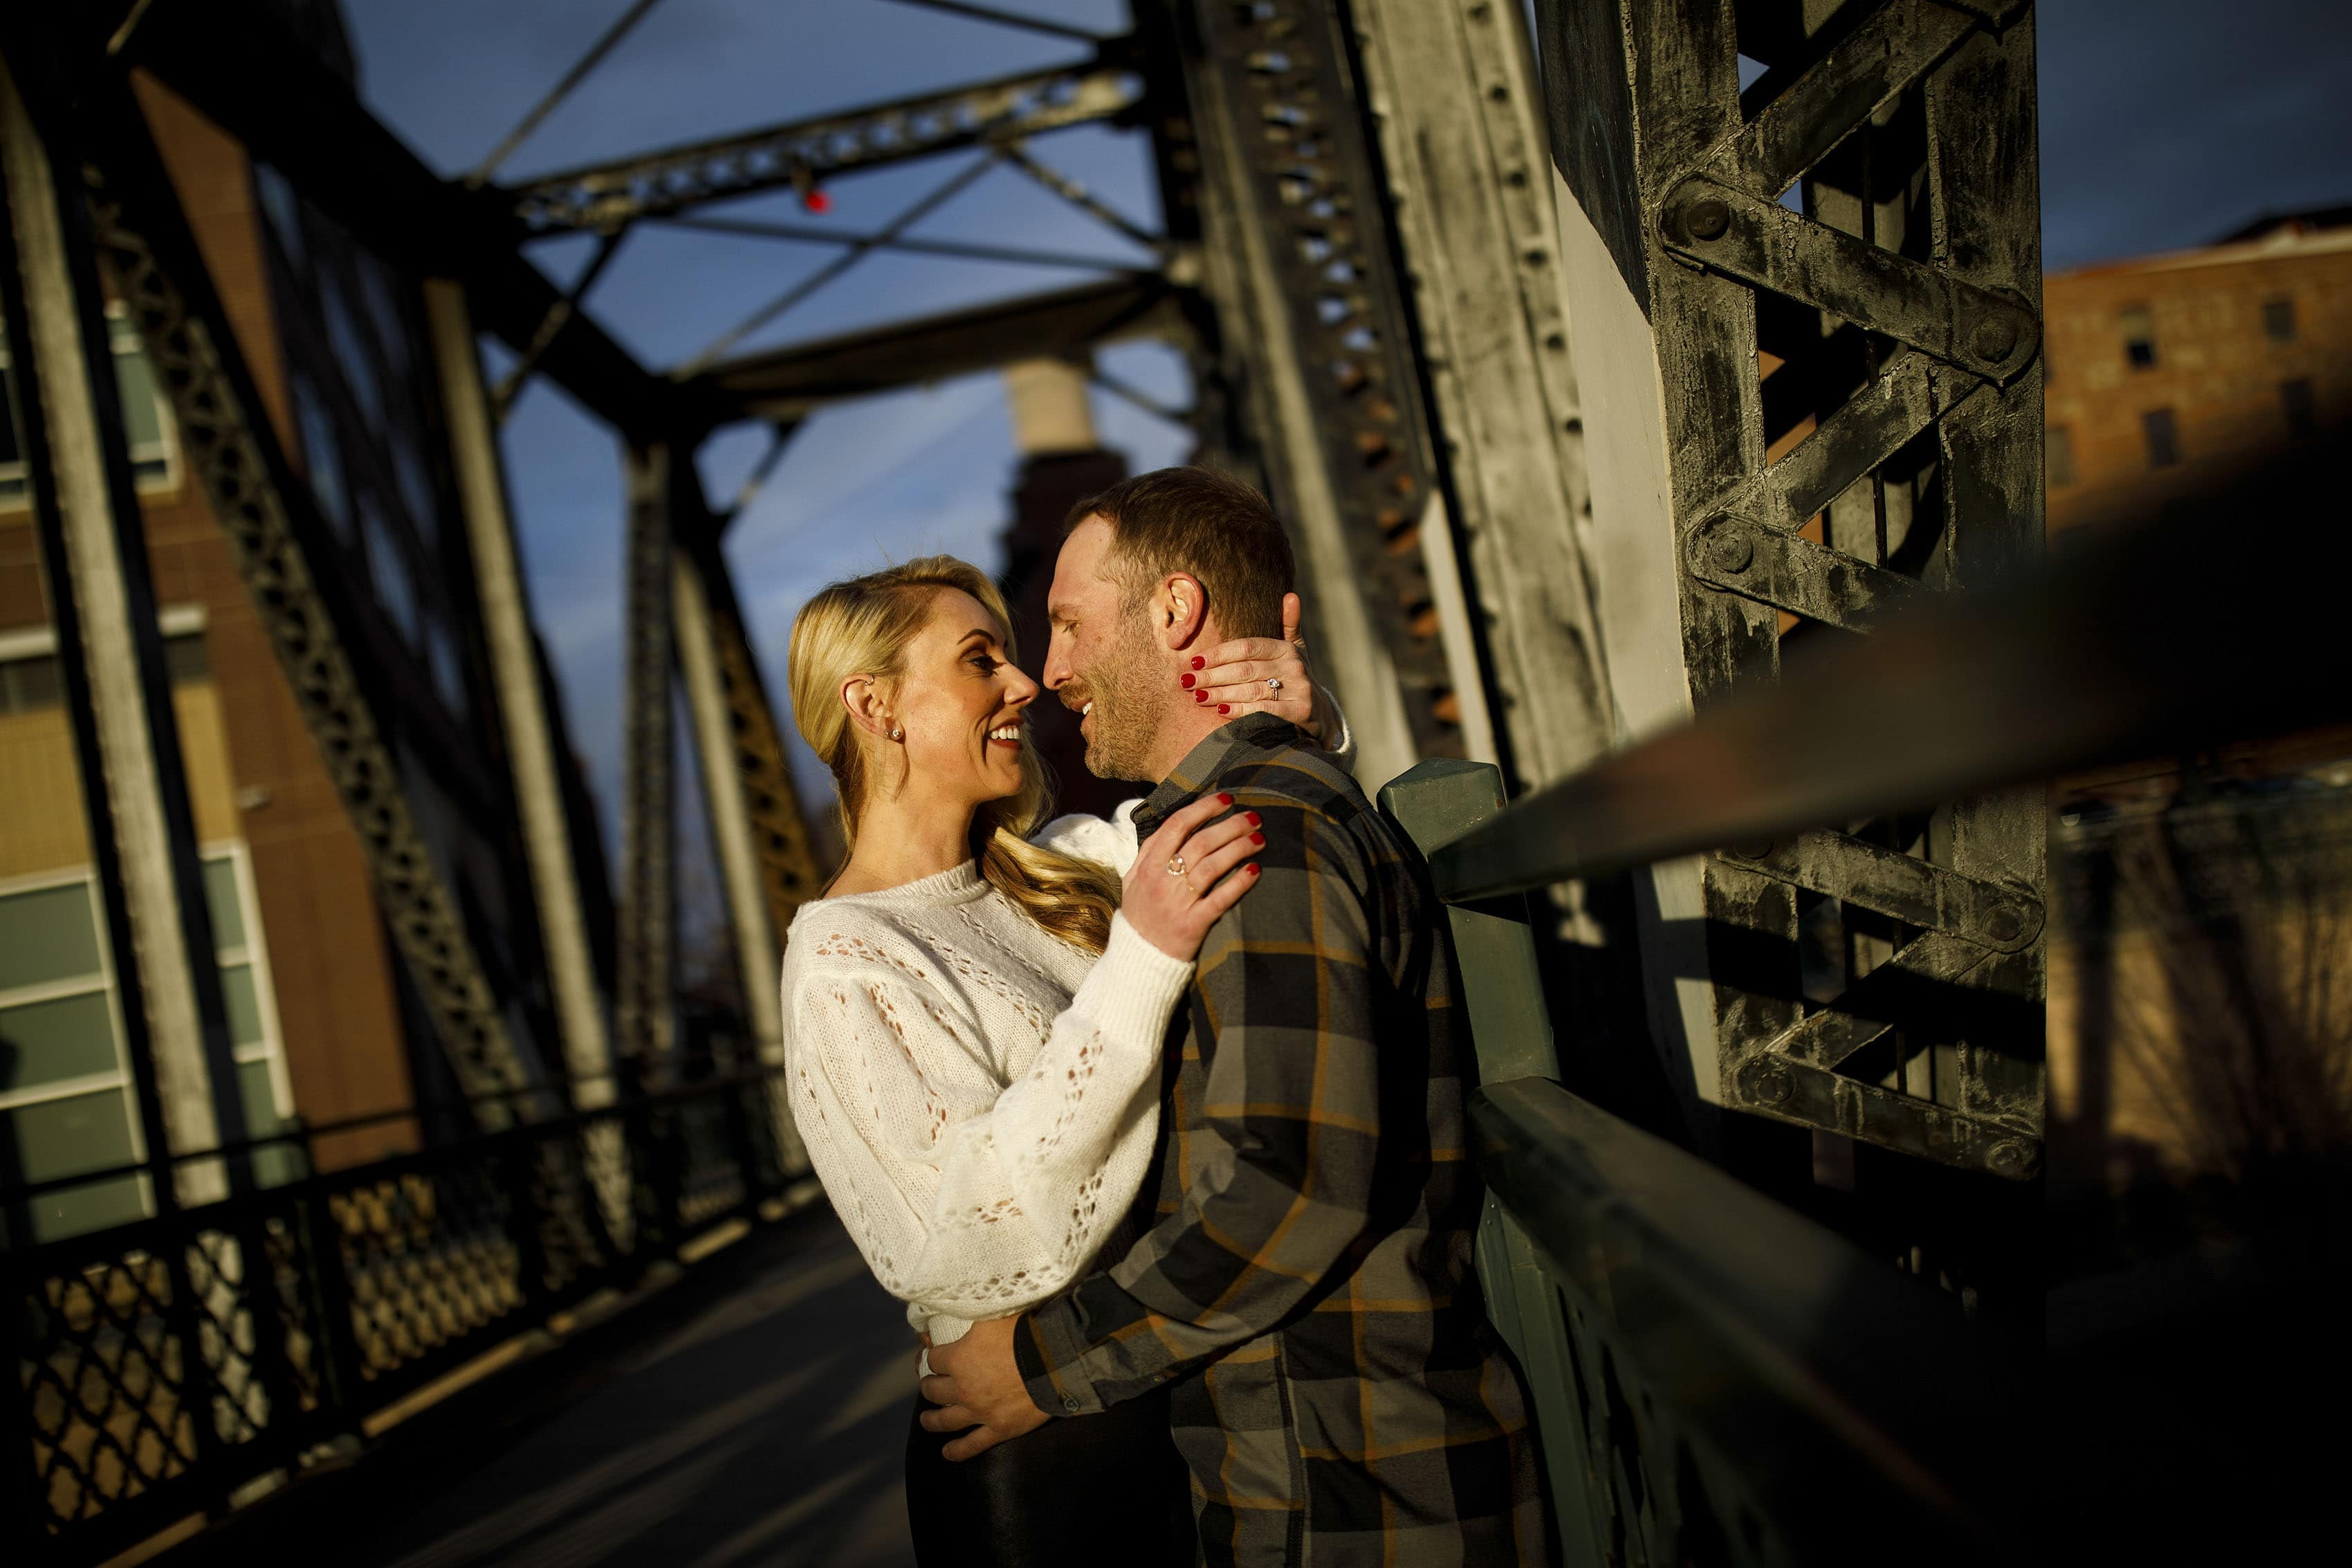 A couple share a moment together at sunset on the Wynkoop Street Bridge during their engagement photos in downtown Denver